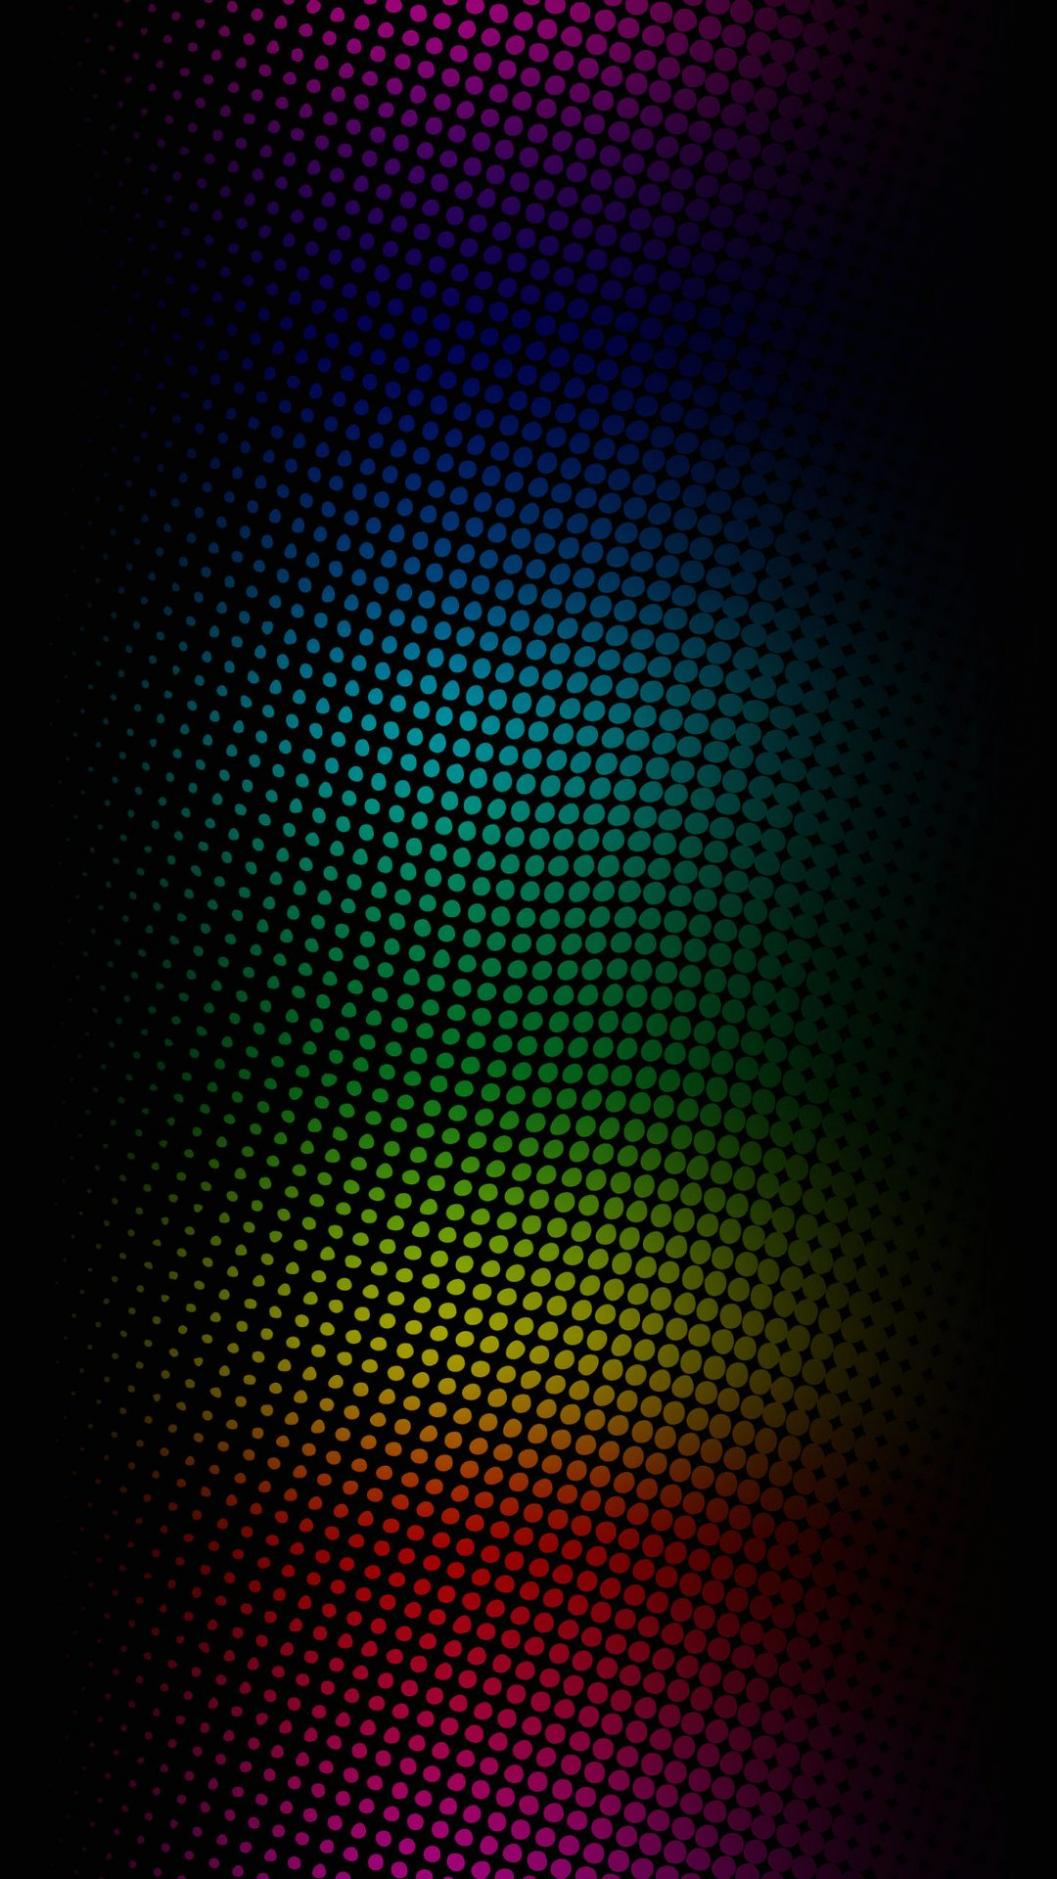 htc one m8 wallpapers xda 22+ - page 2 of 3 - dzbc